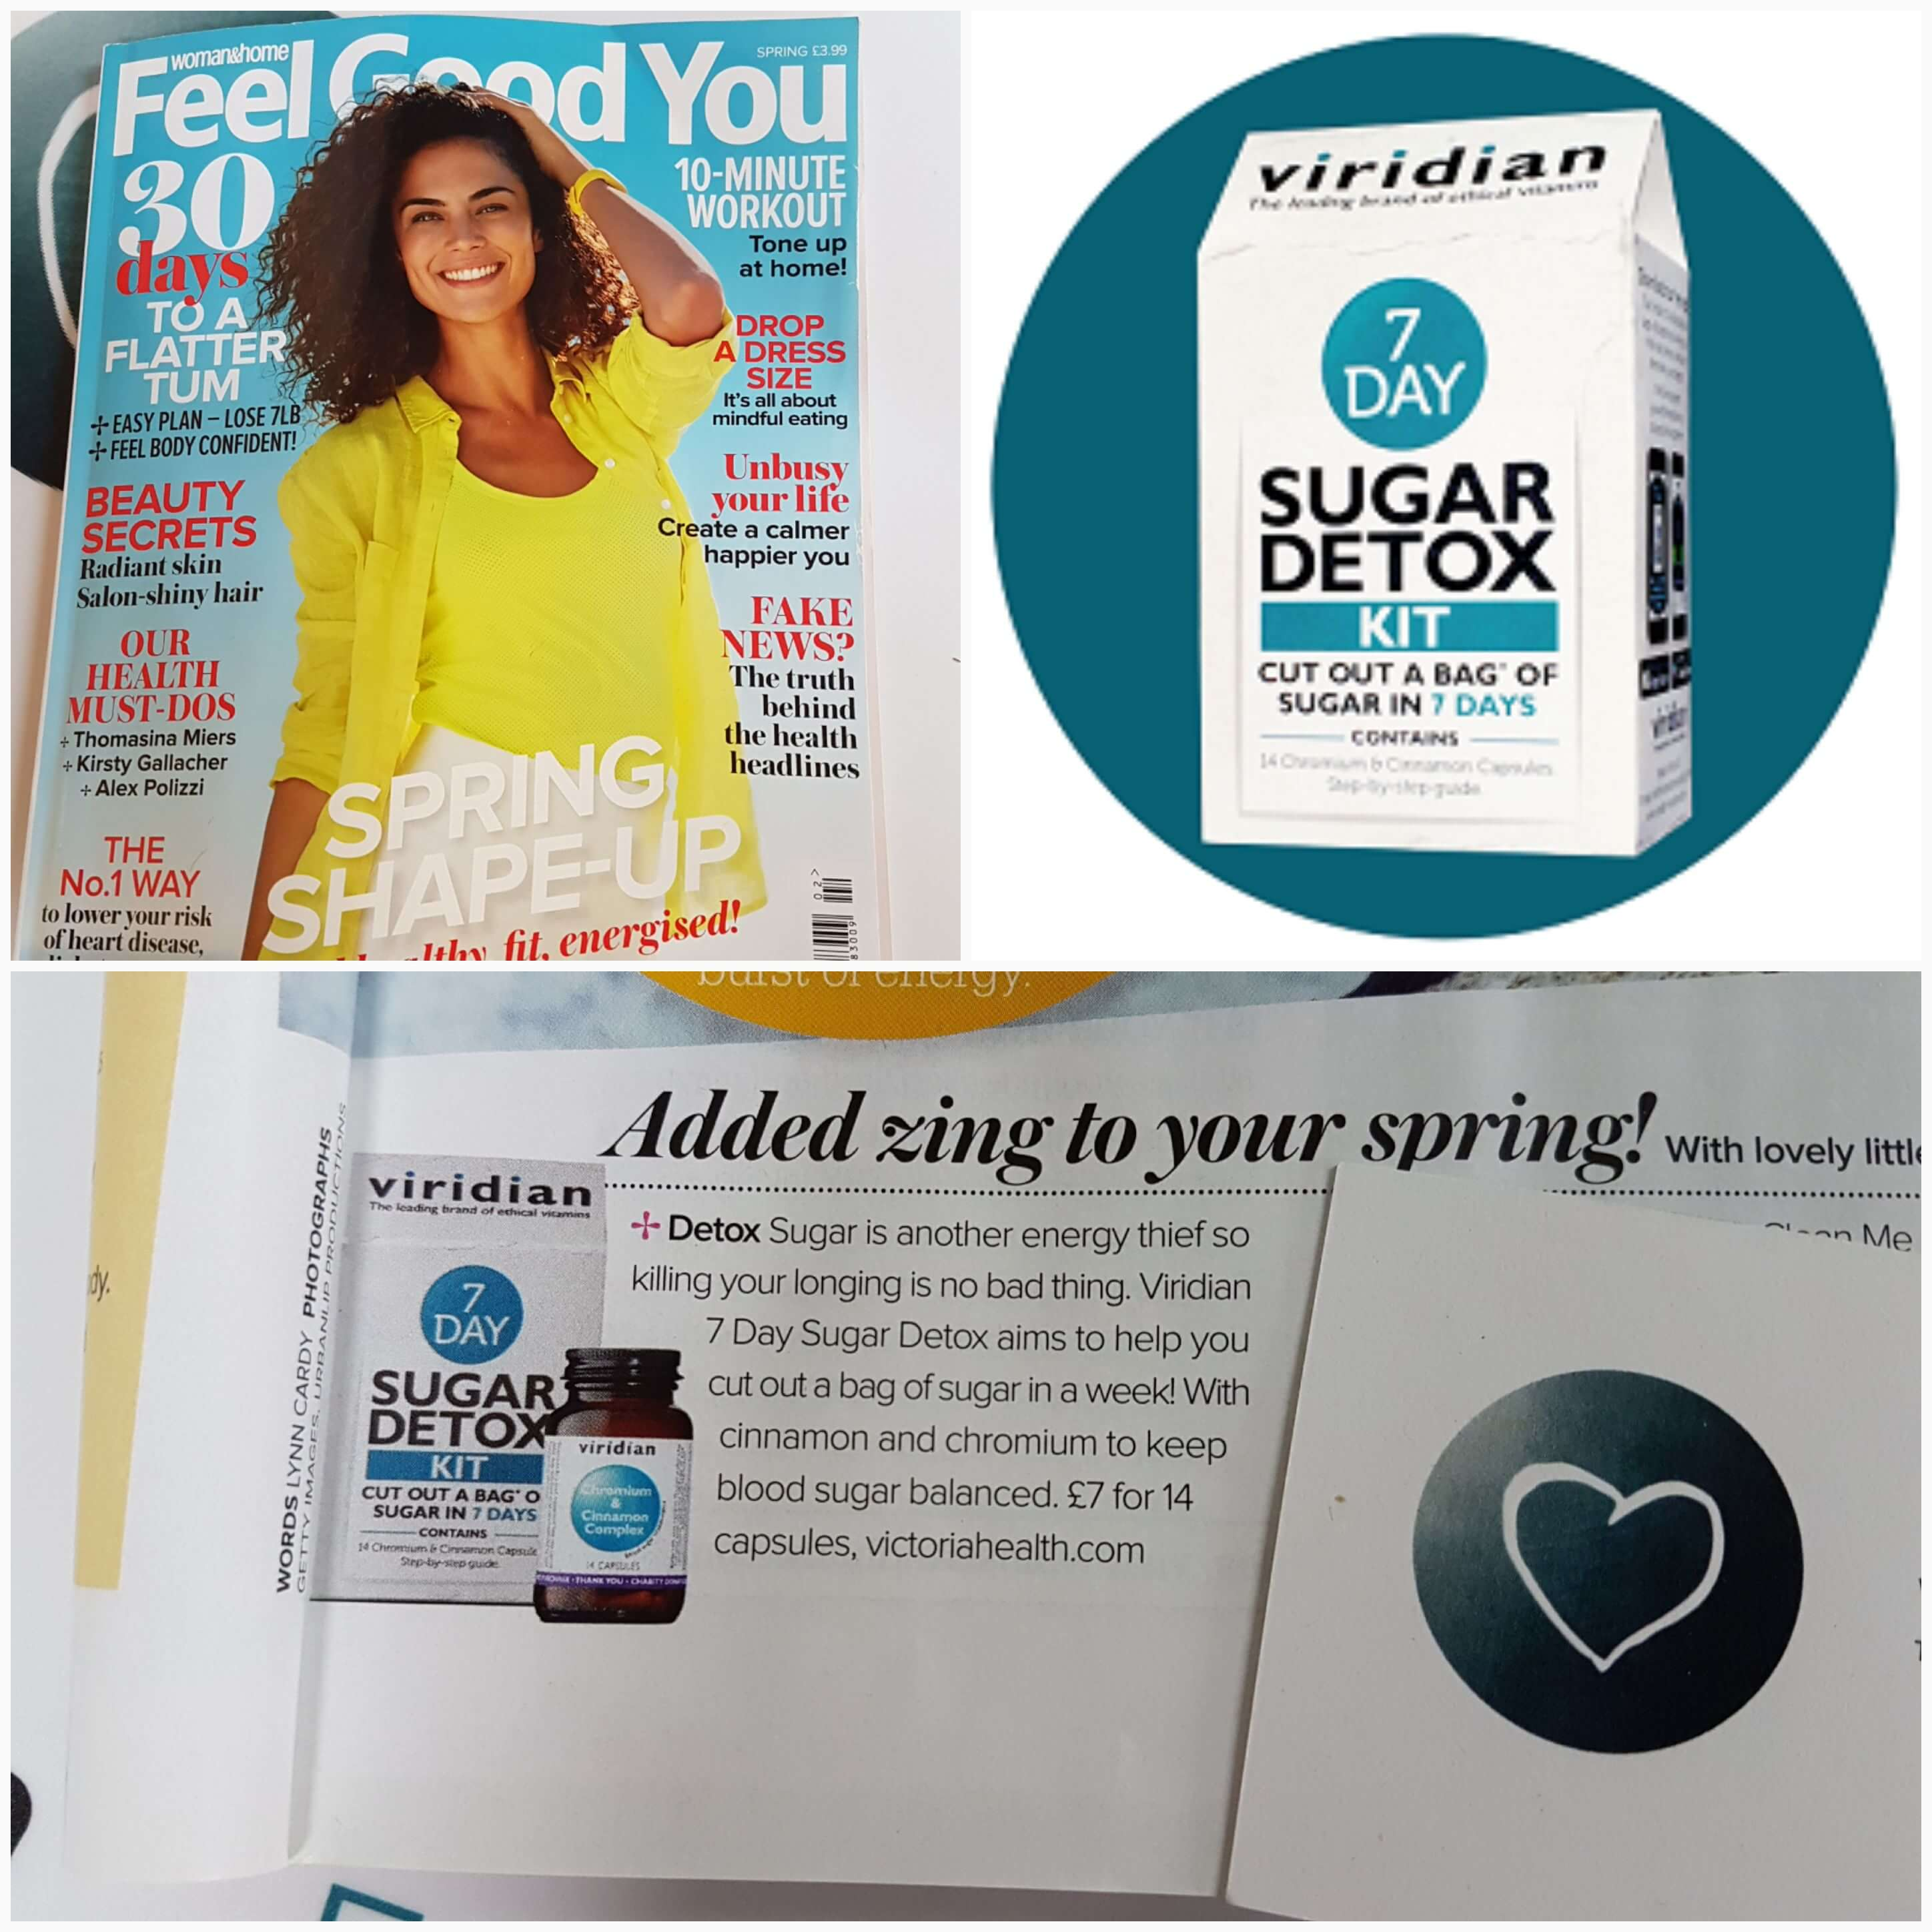 Viridian 7 Day Sugar Detox Kit appears in Feel Good You magazine